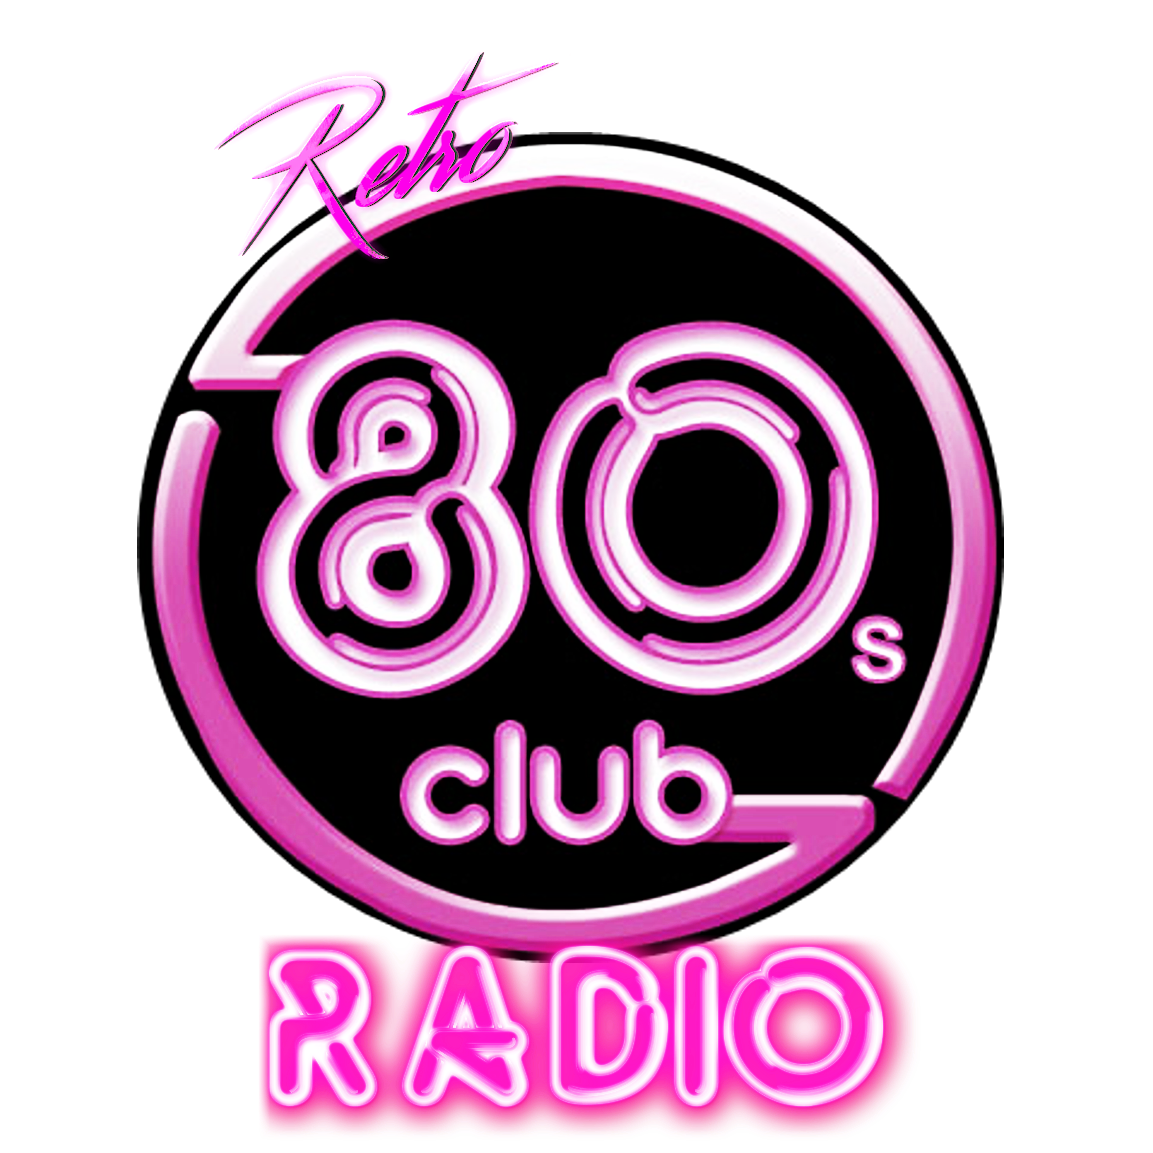 Retro 80's club Radio